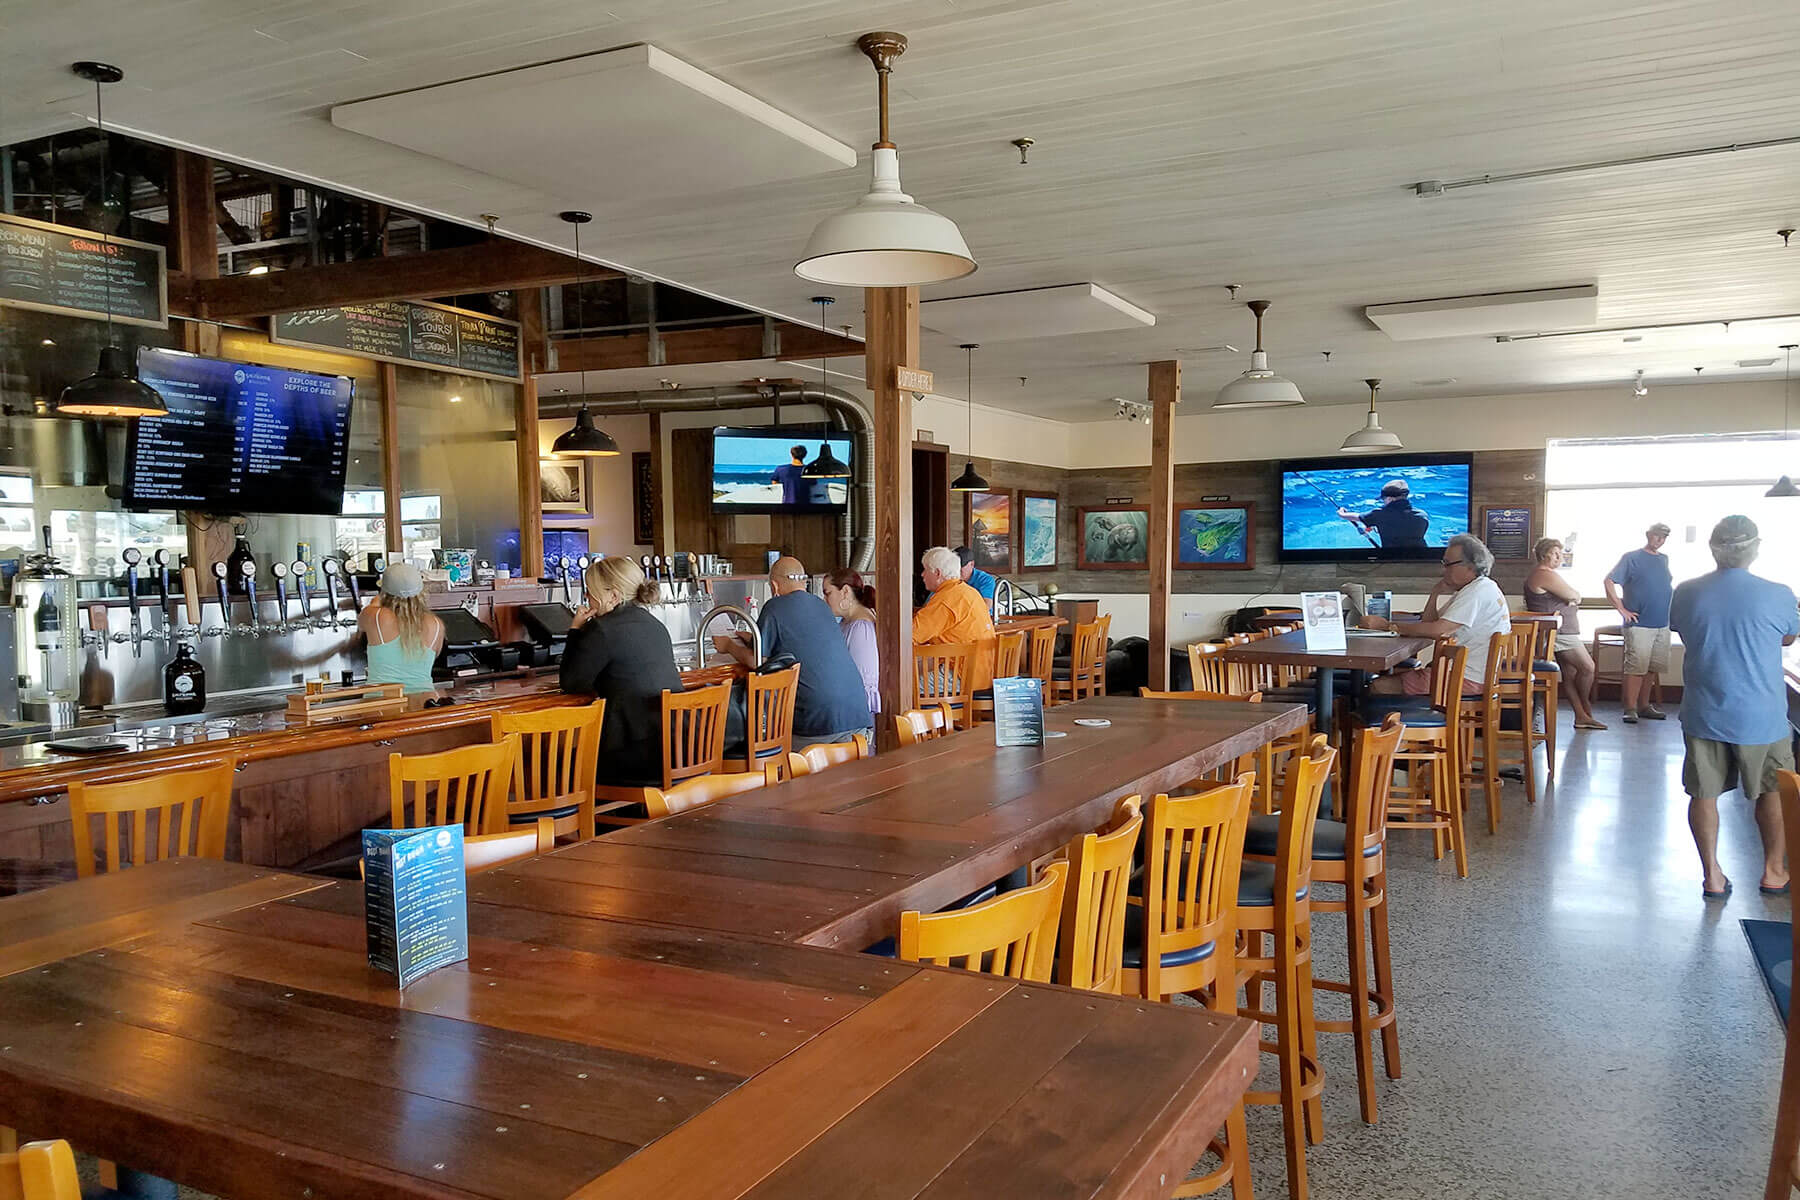 Inside the SaltWater Brewery taproom in Delray Beach, Florida